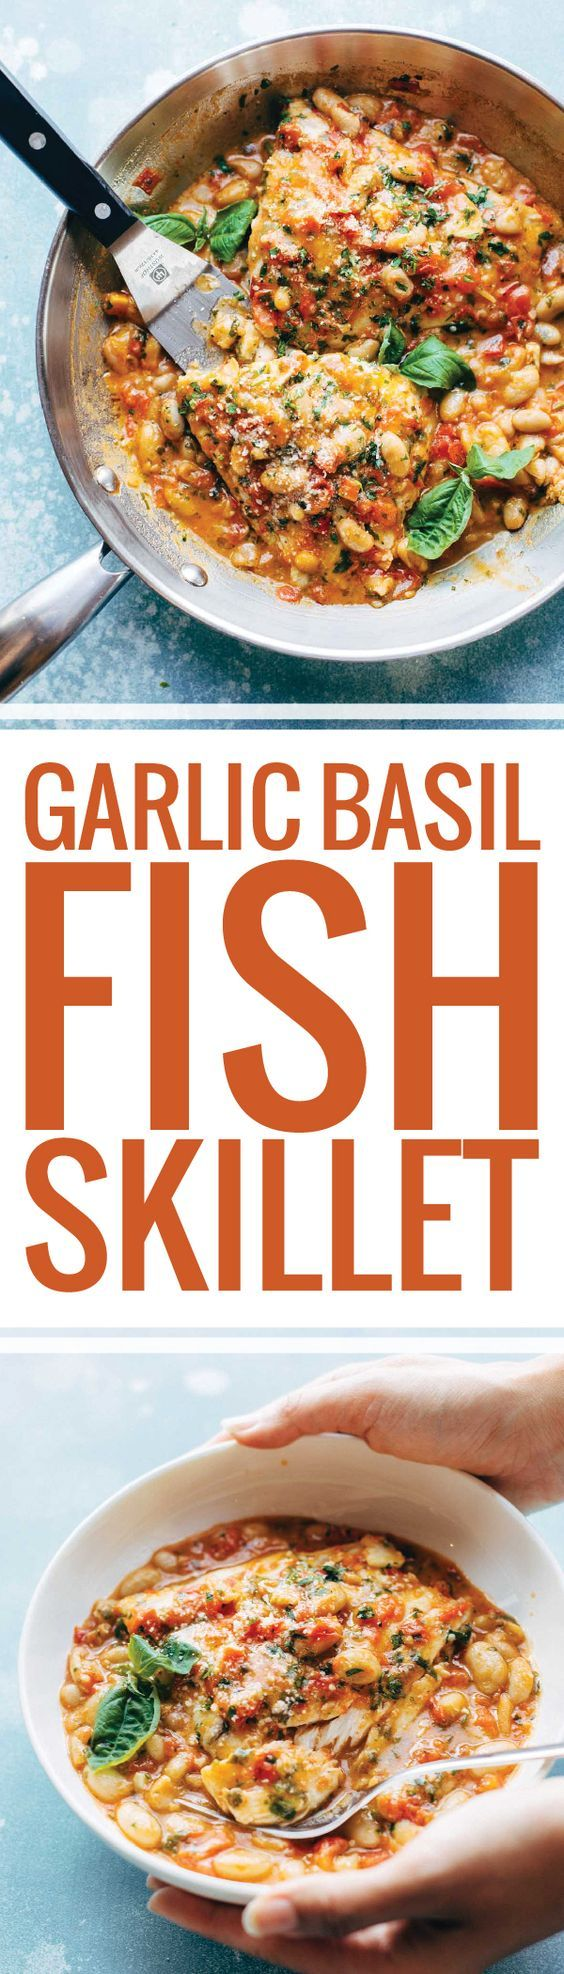 Garlic Basil Barramundi Skillet with Tomato Butter Sauce! SO YUMMY and super easy, with basic ingredients like garlic, basil, tomatoes, white beans, Parmesan, and white fish. Perfect with a green salad and crusty bread. | pinchofyum.com